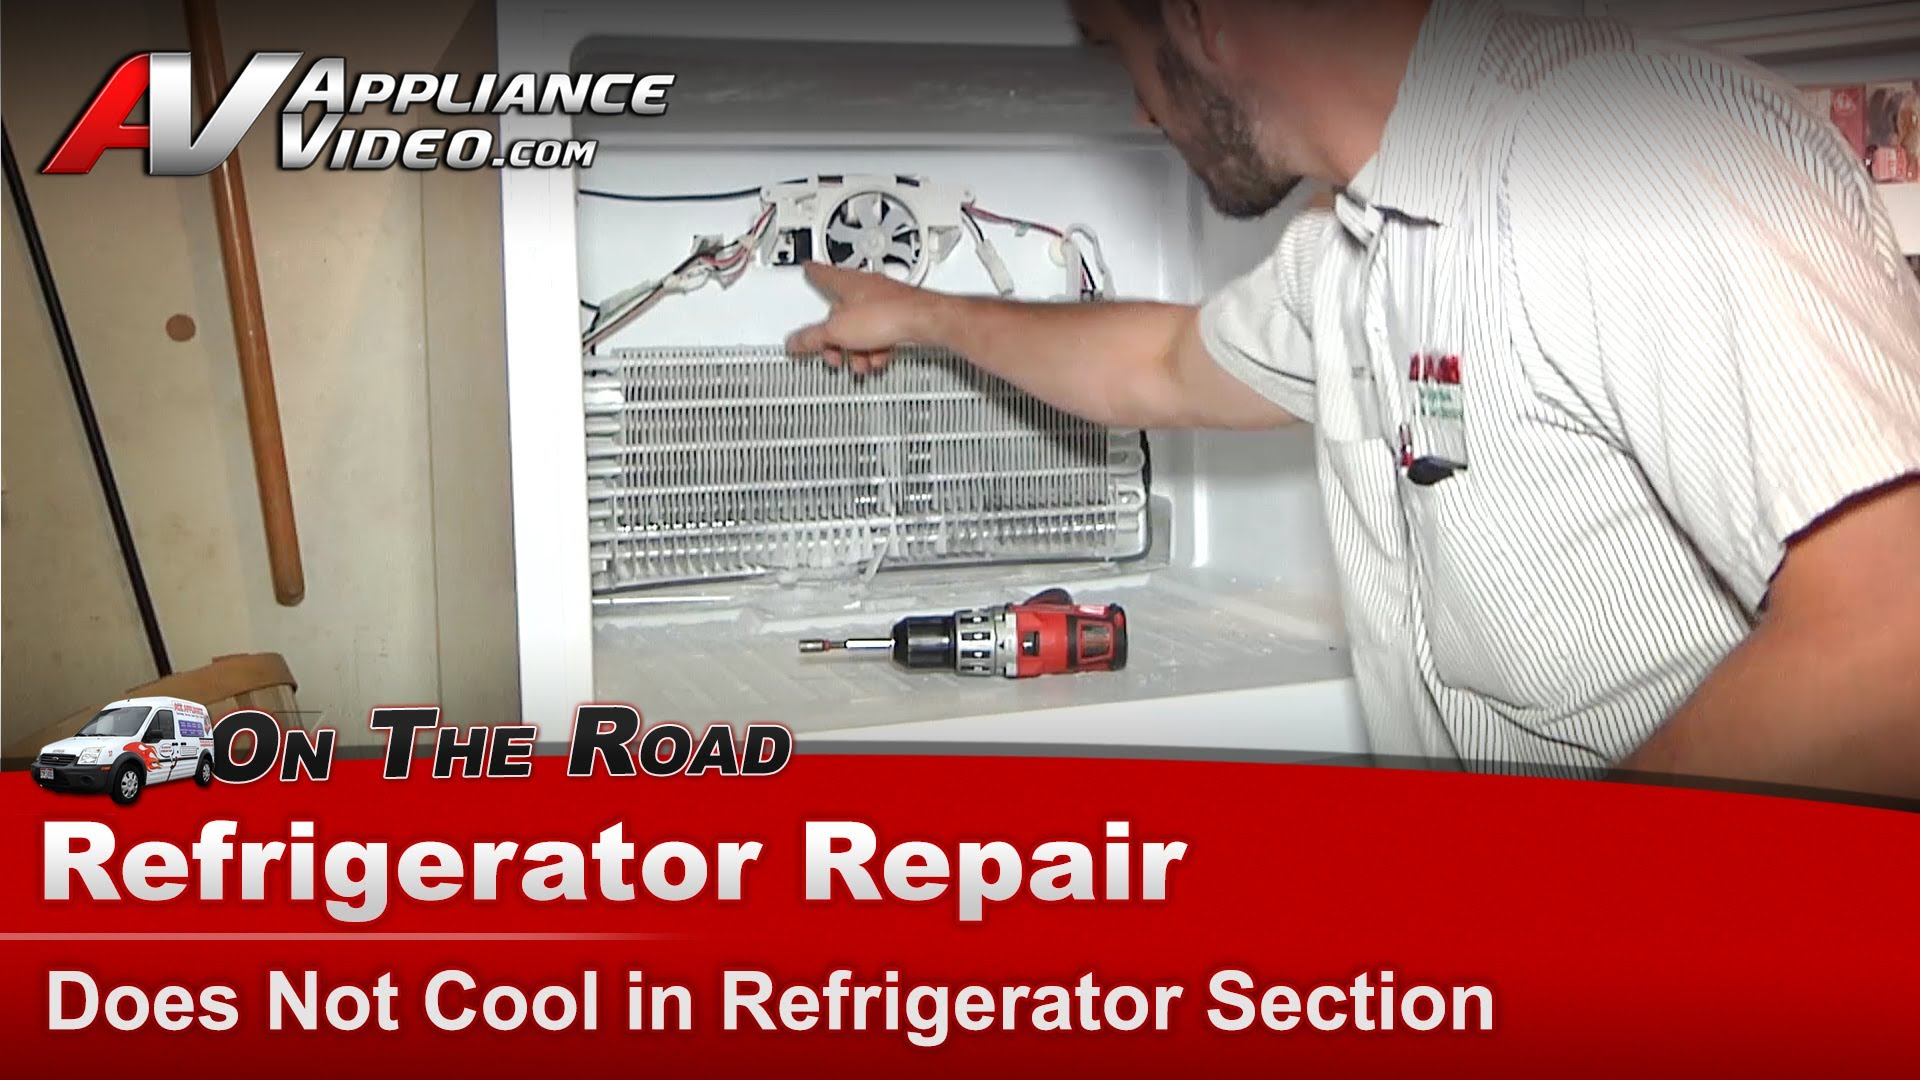 Amana A2rxnmfww01 Refrigerator Repair Does Not Cool In